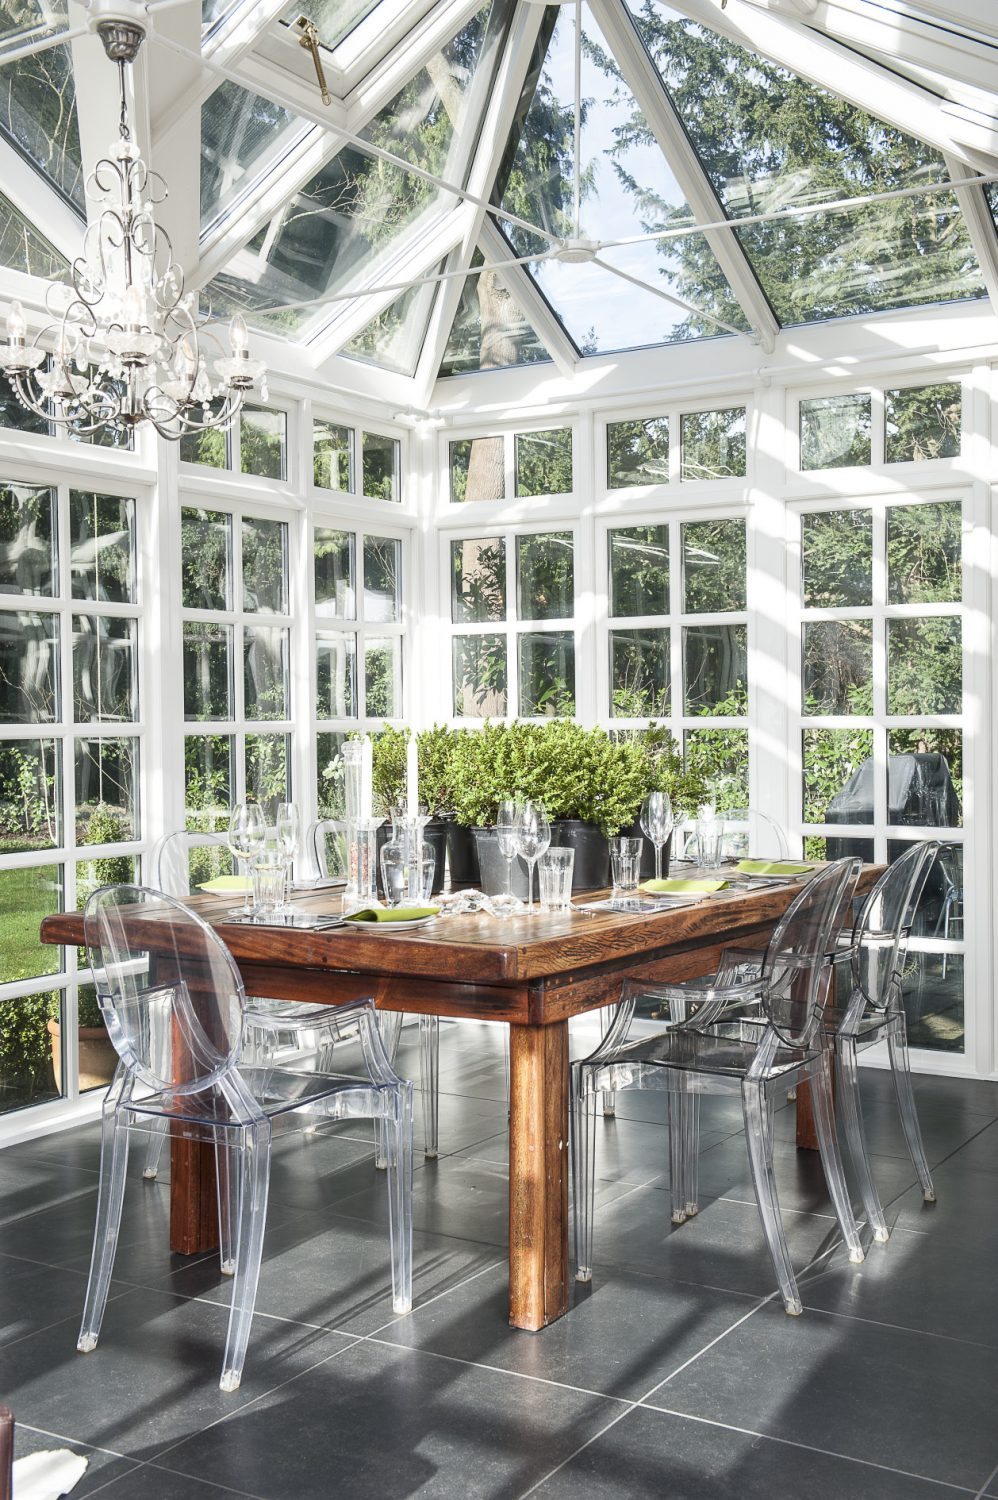 Philippe Starck chairs surround a wonderful dining table, made from old African railway sleepers, which once graced the couple's veranda in South Africa